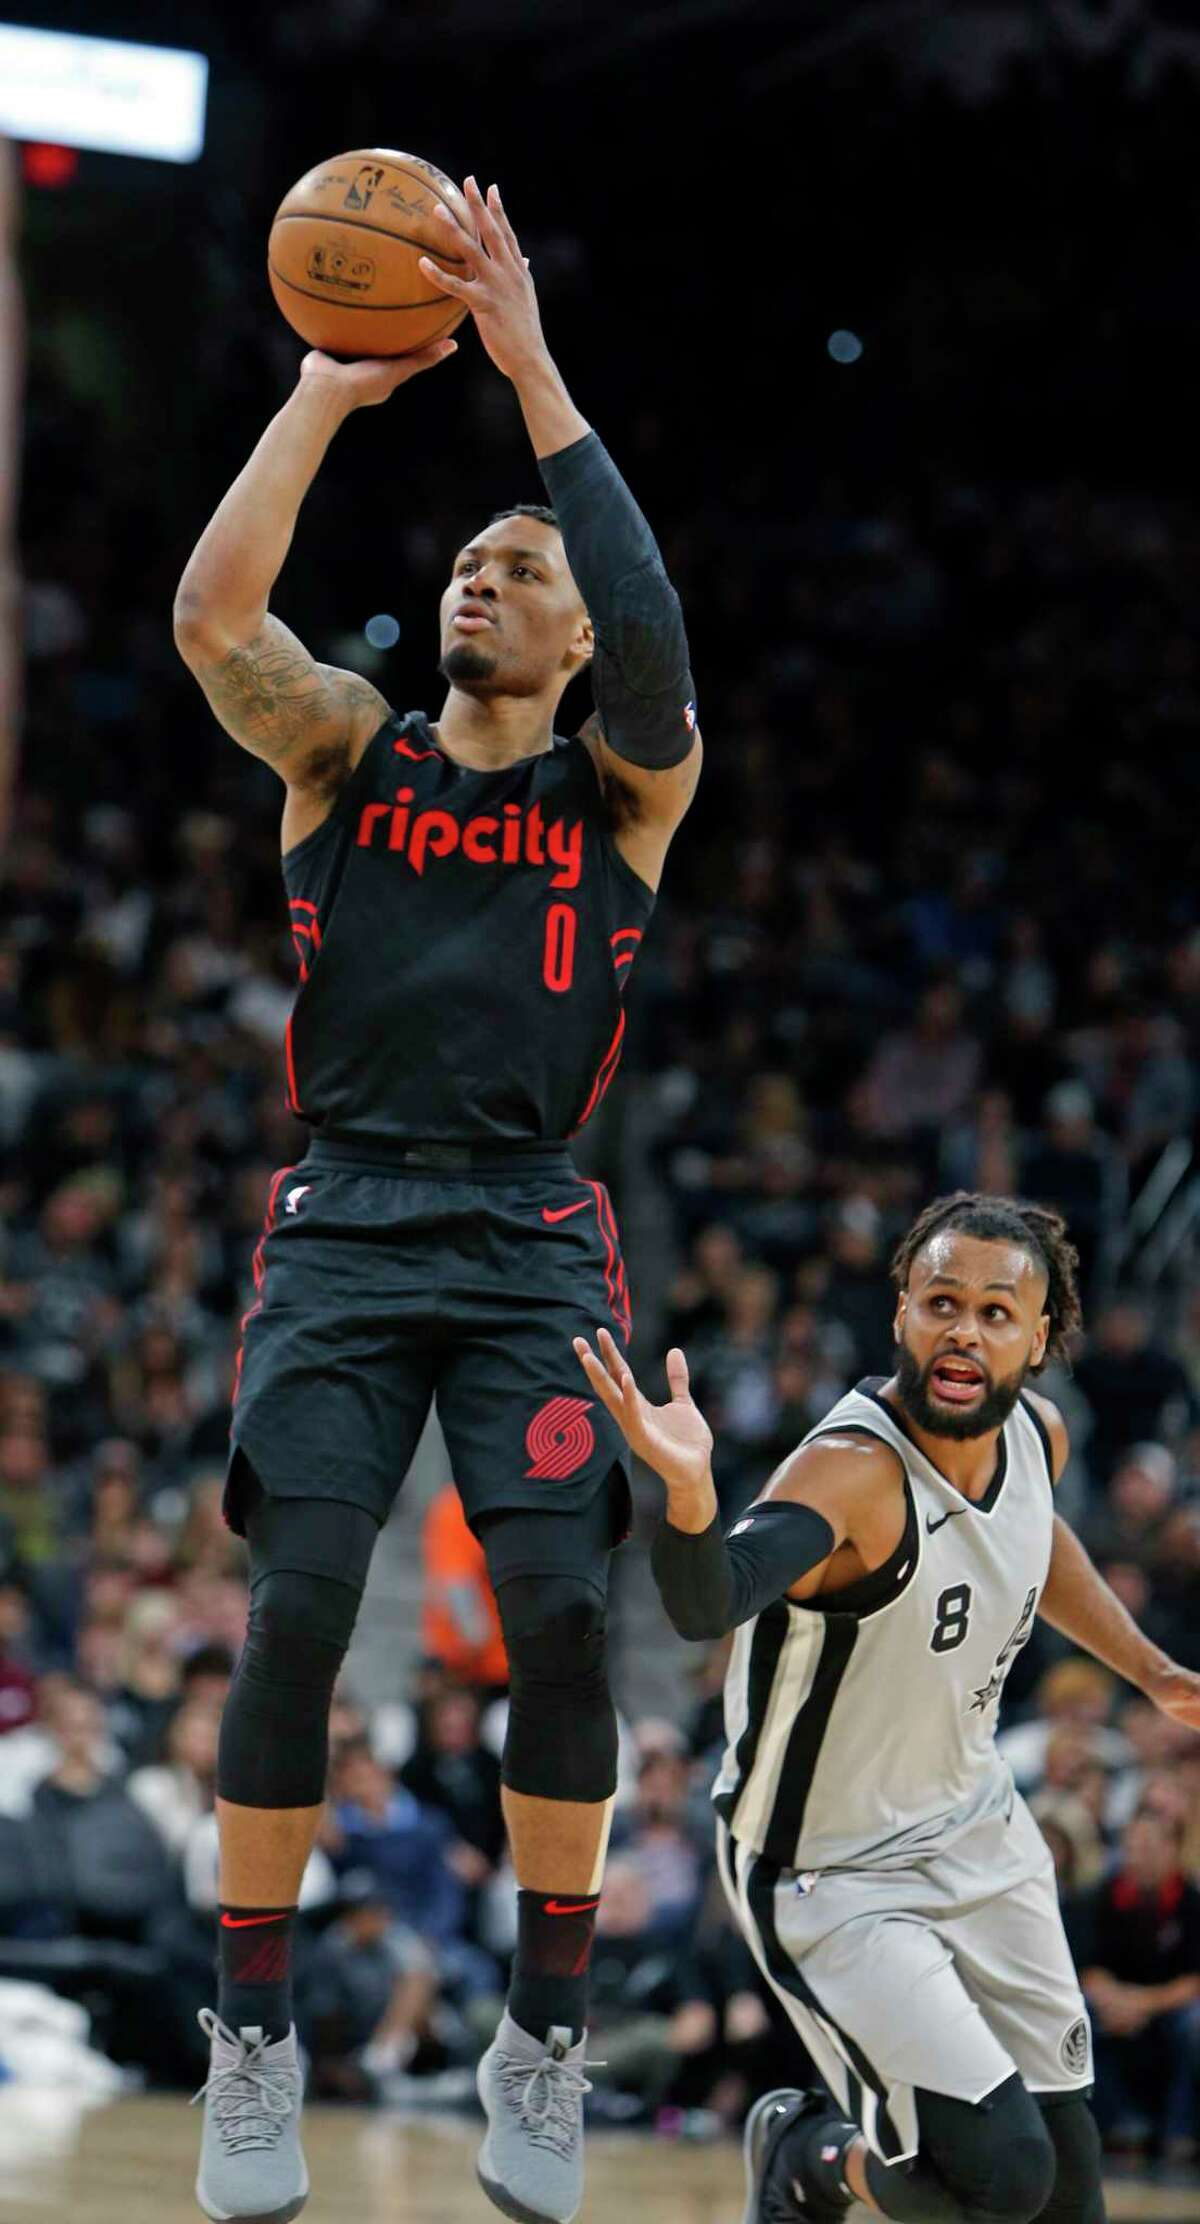 Portland Trail Blazers point guard Damian Lillard (0) shoots in front San Antonio Spurs guard Patty Mills (8) during the first half of an NBA basketball game Saturday, April 7, 2018, in San Antonio. (AP Photo/Ronald Cortes)